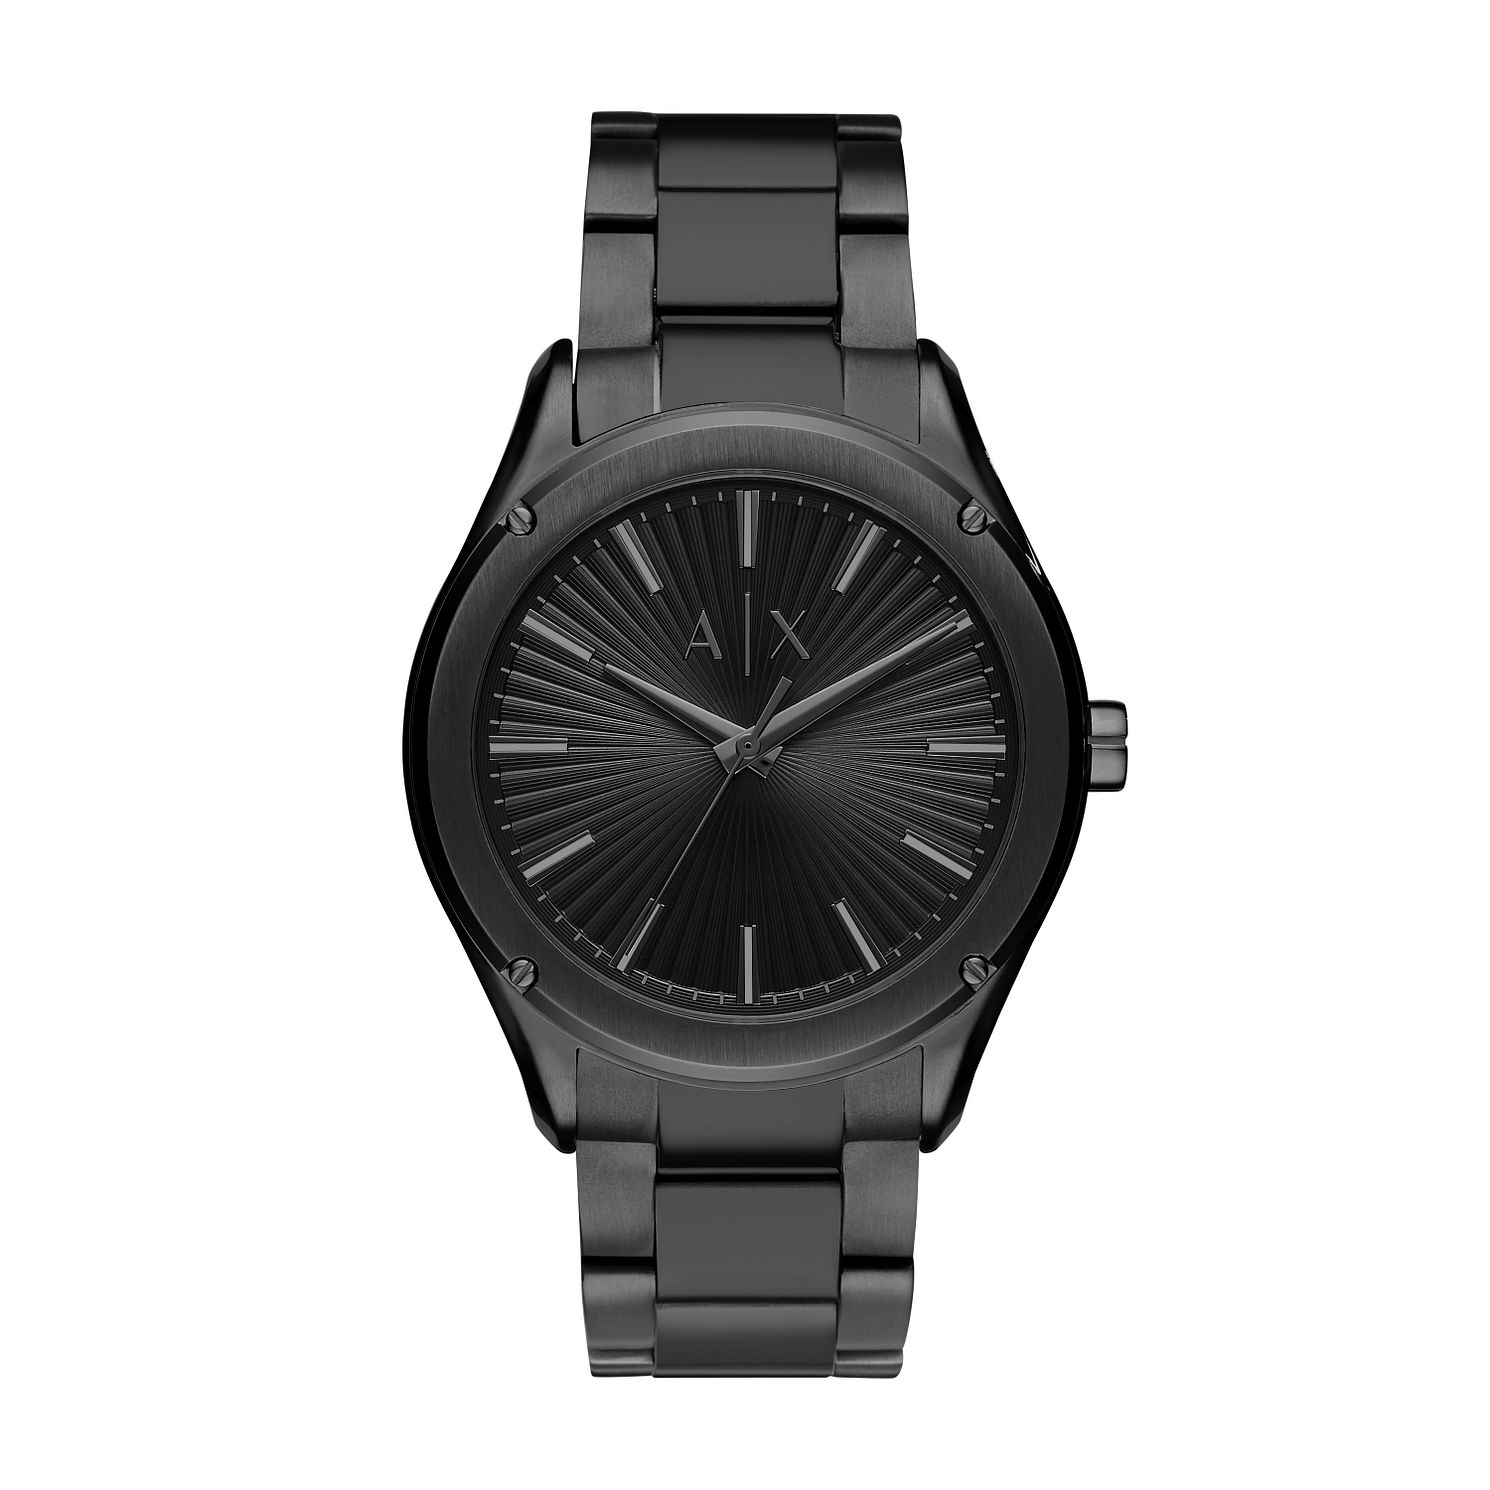 Armani Exchange Men's Black Stainless Steel Bracelet Watch - Product number 5326796